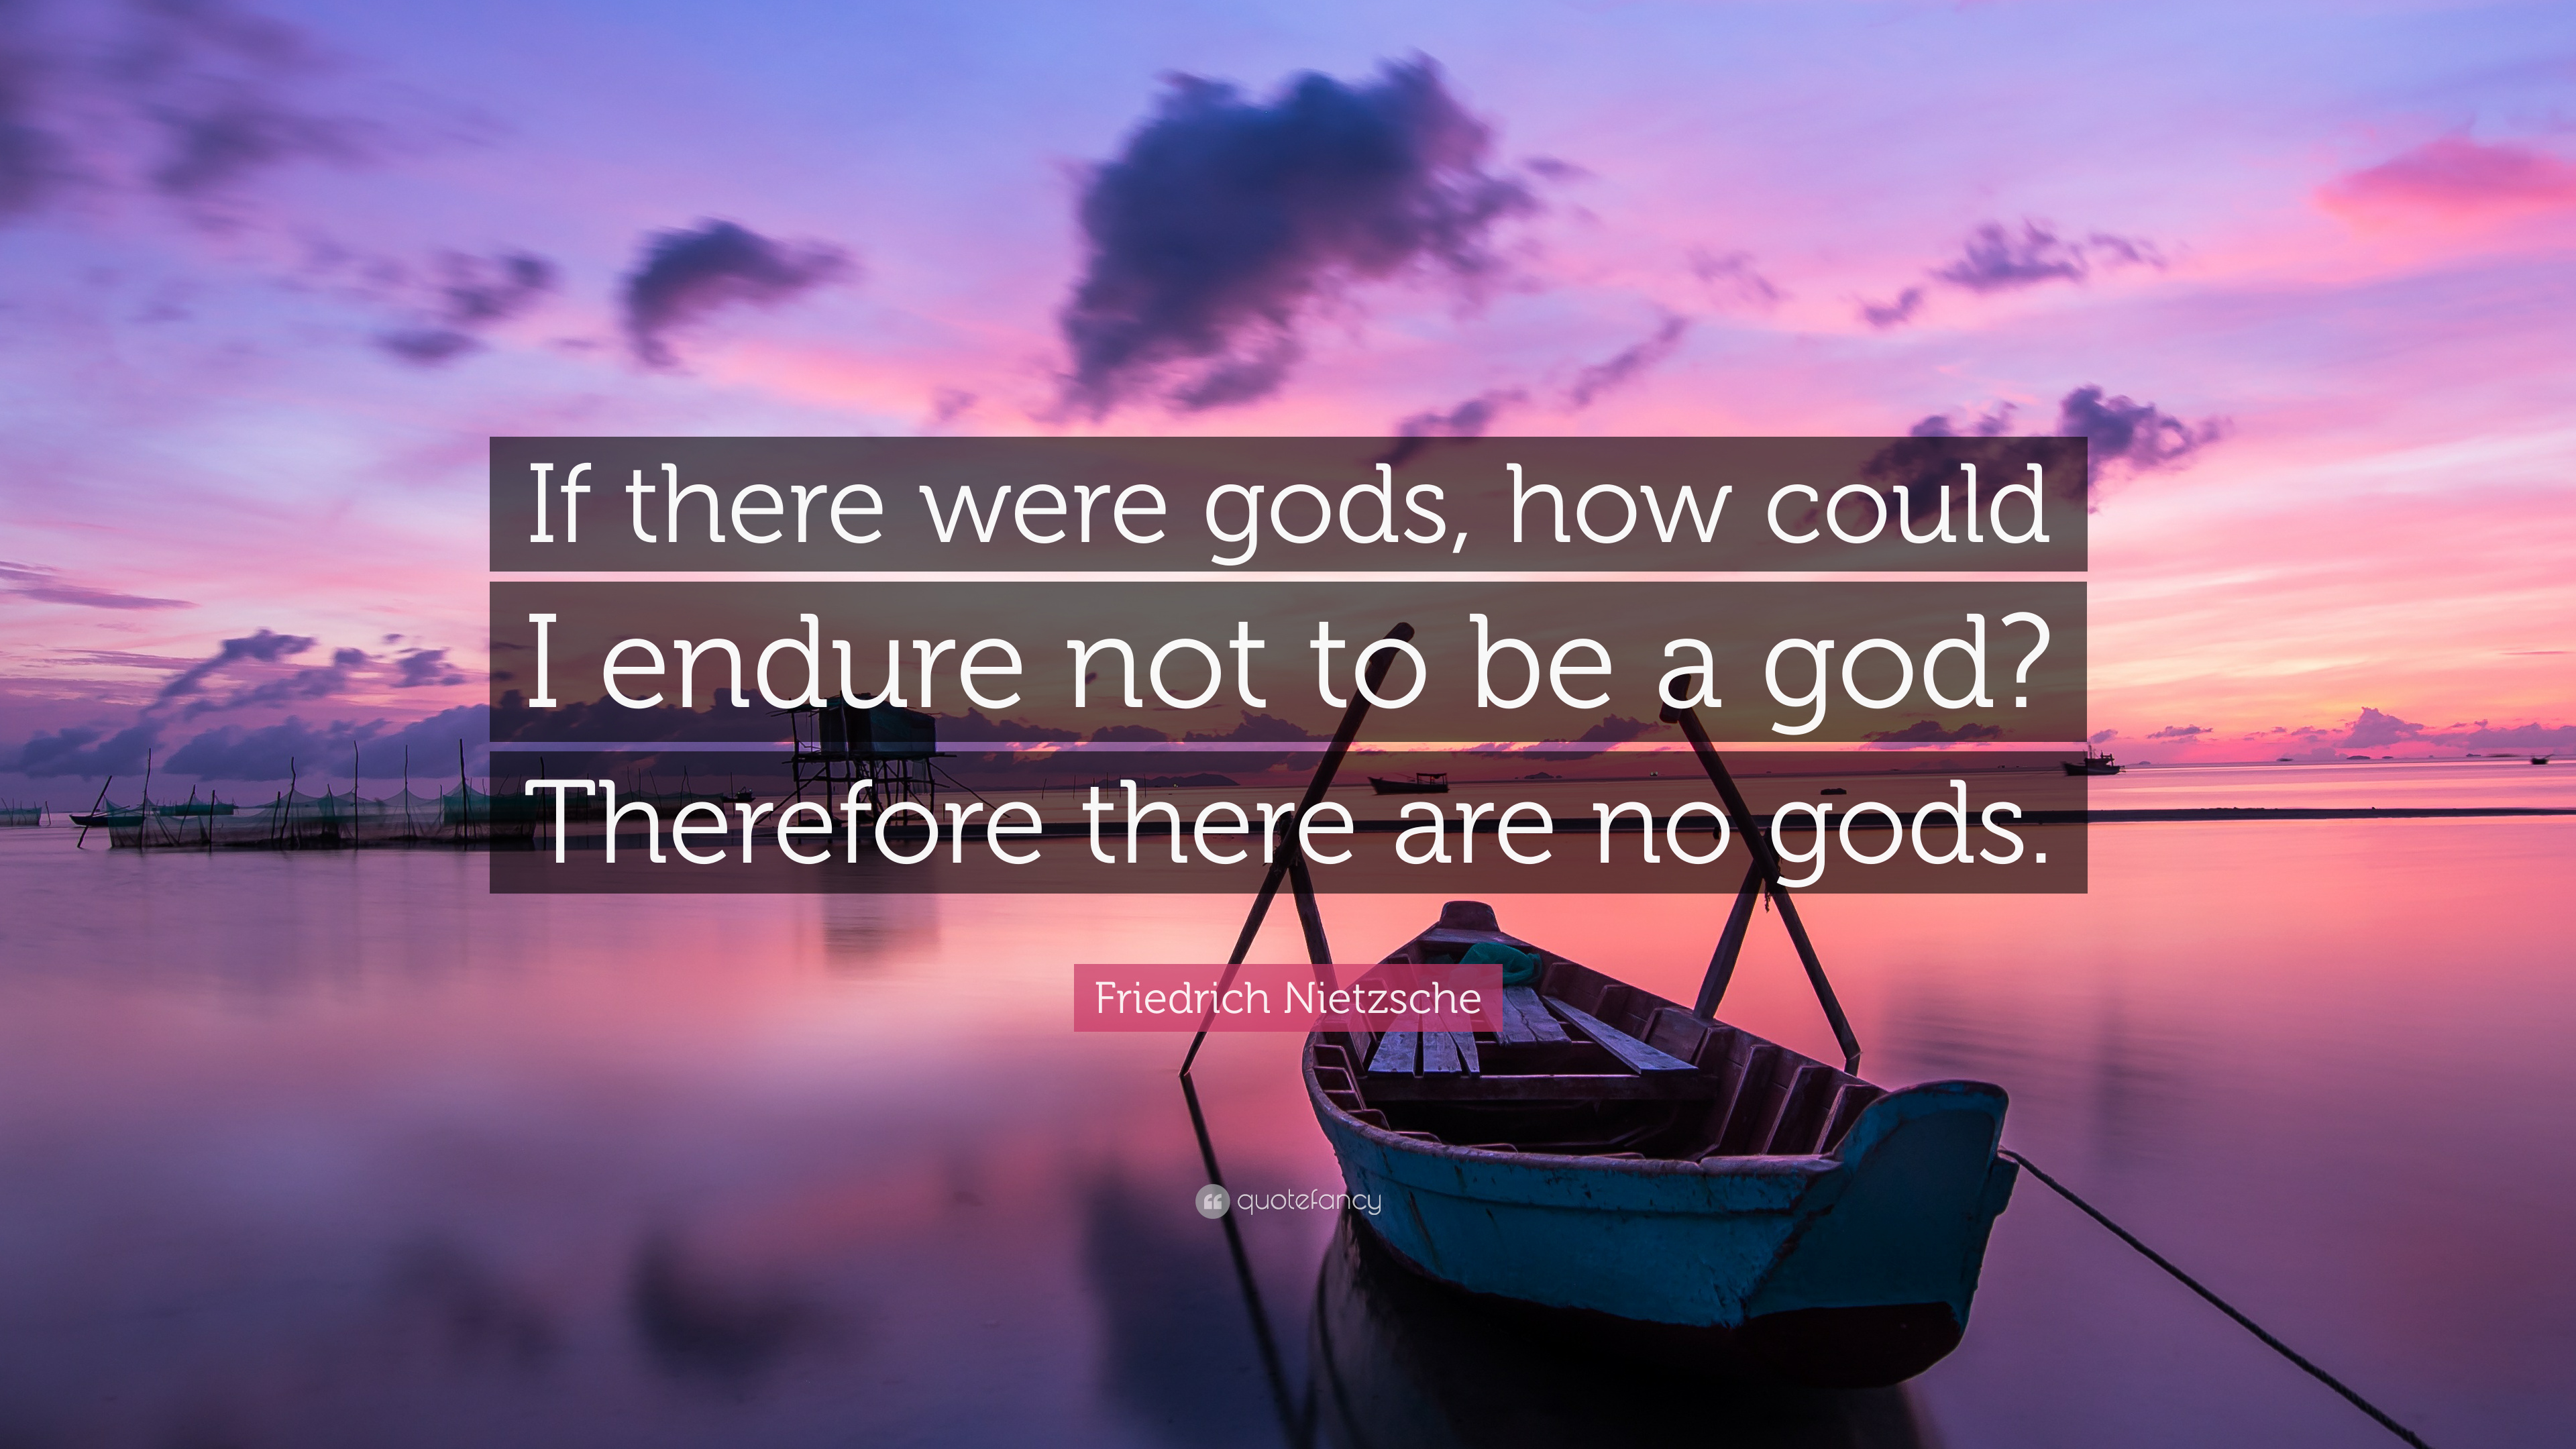 Friedrich Nietzsche Quote If There Were Gods How Could I Endure